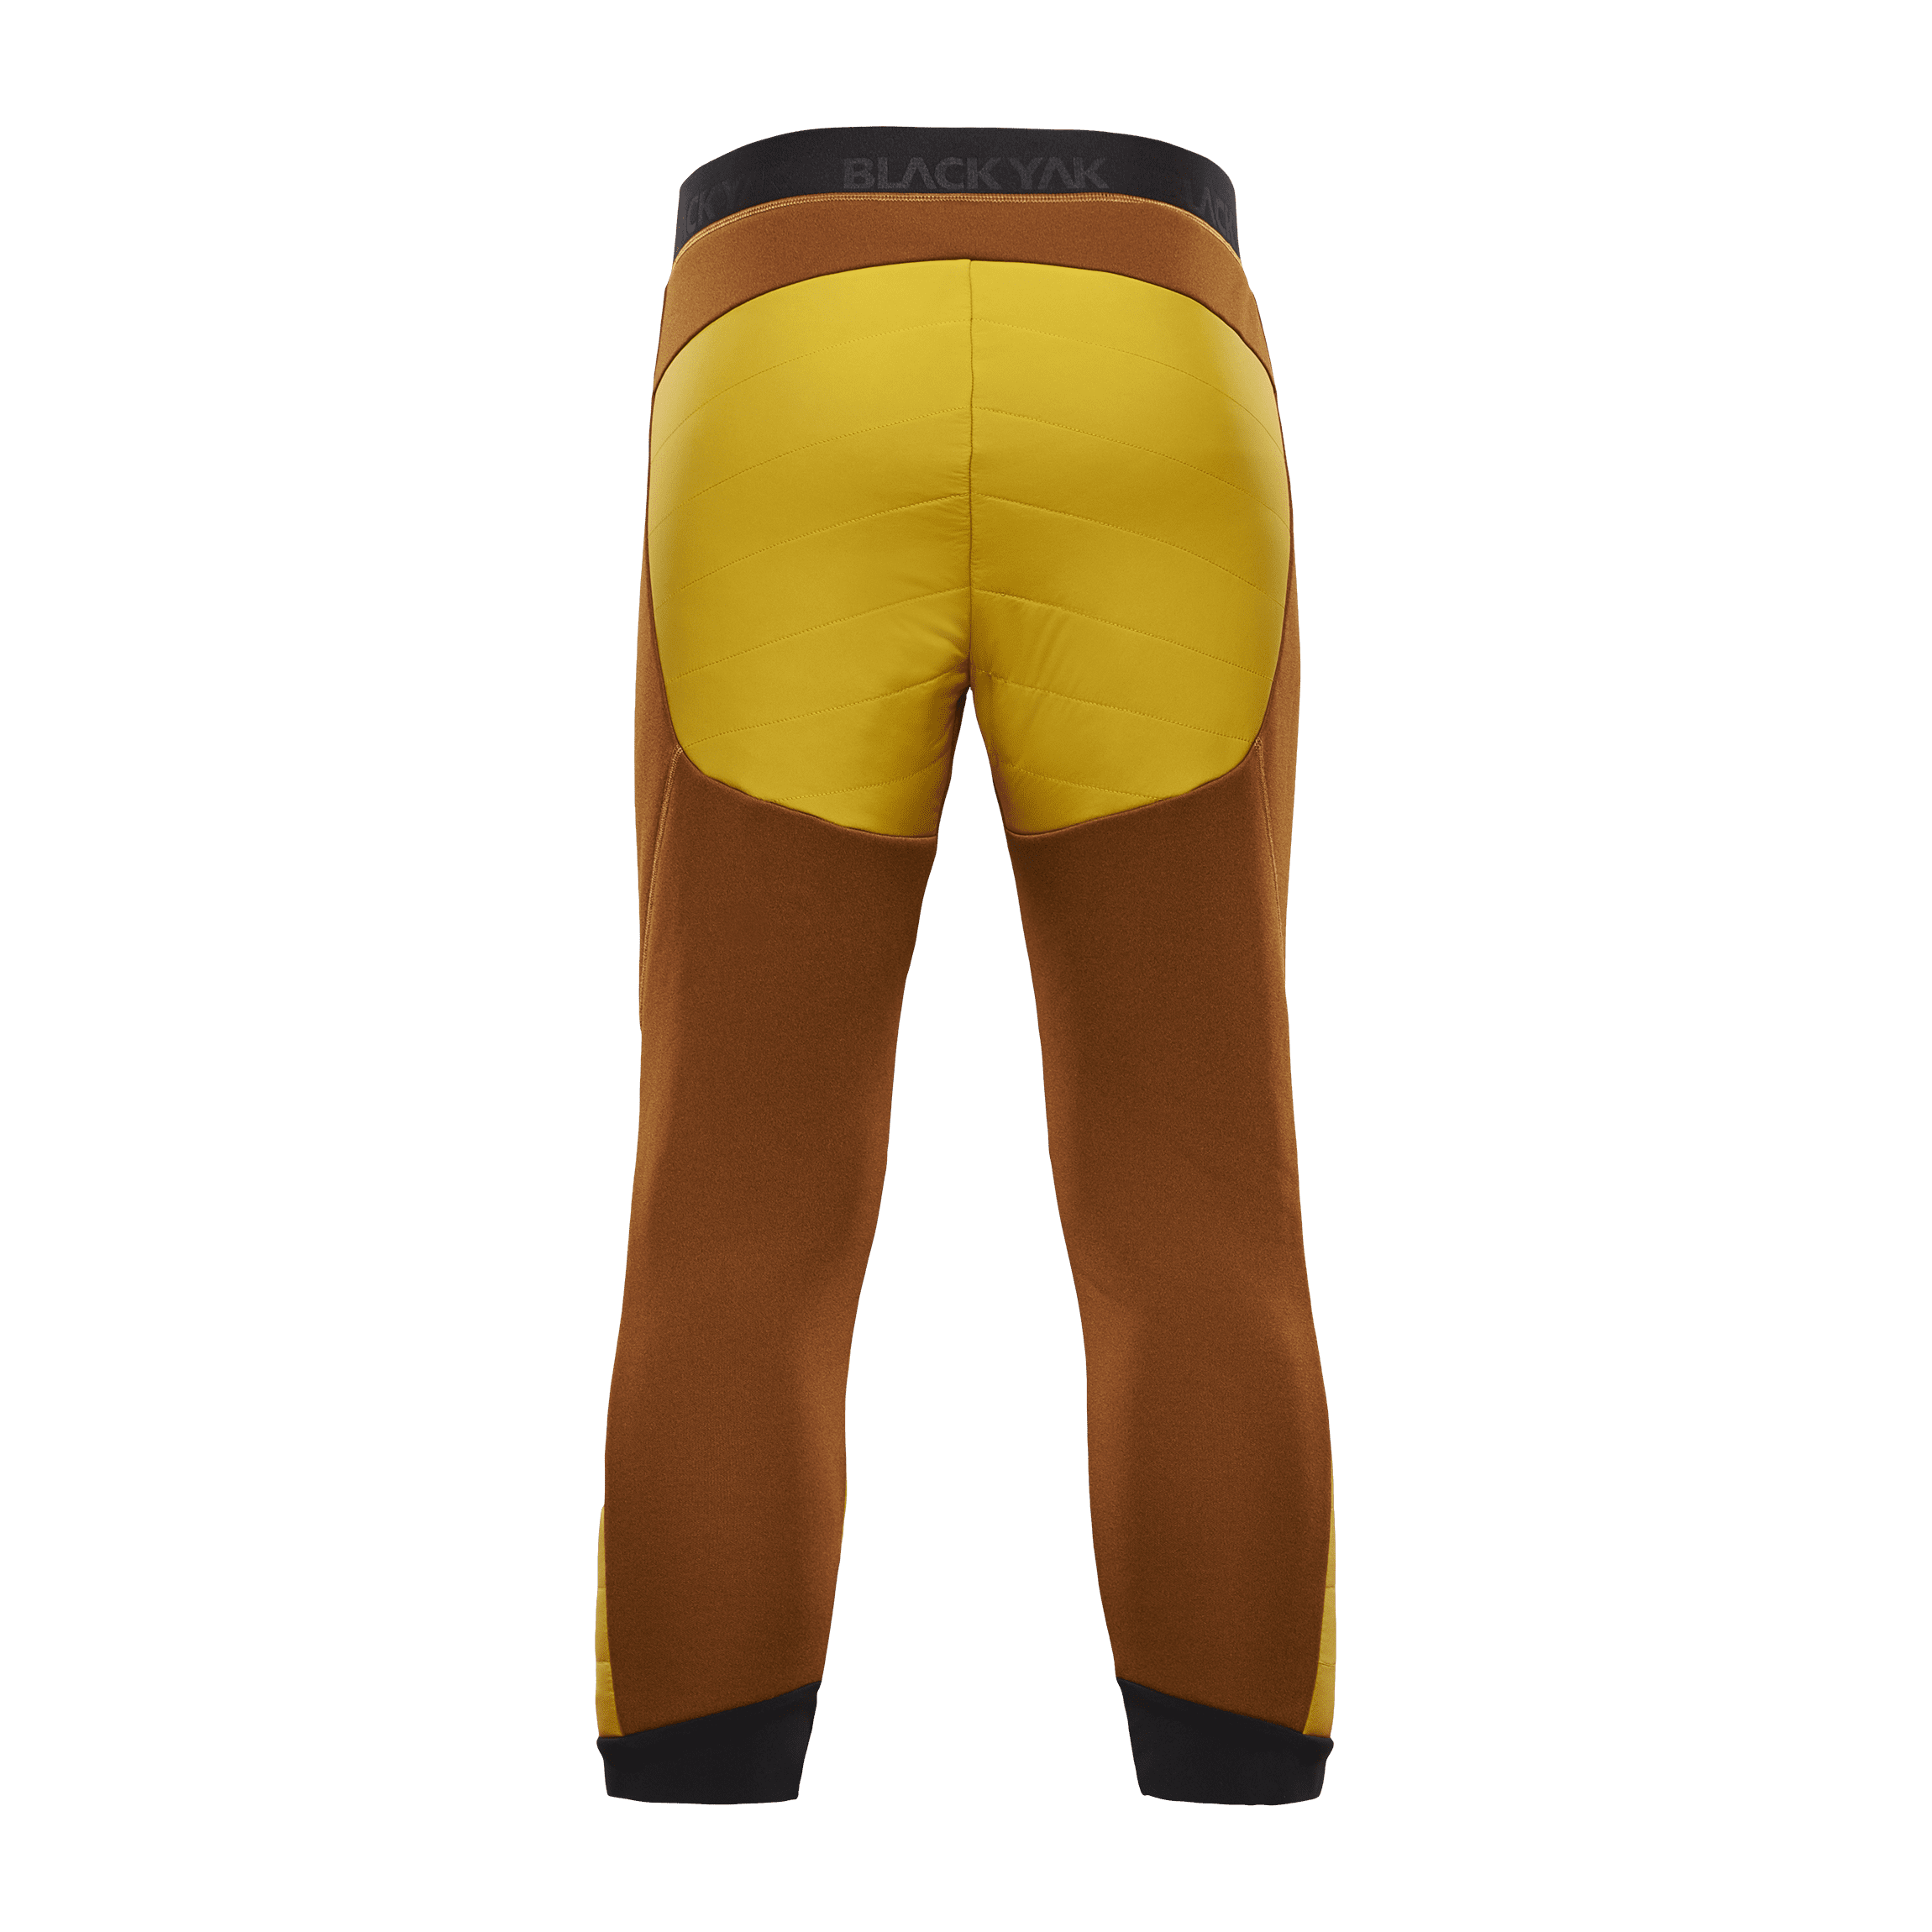 BACKCOUNTRY INSULATION PANTS